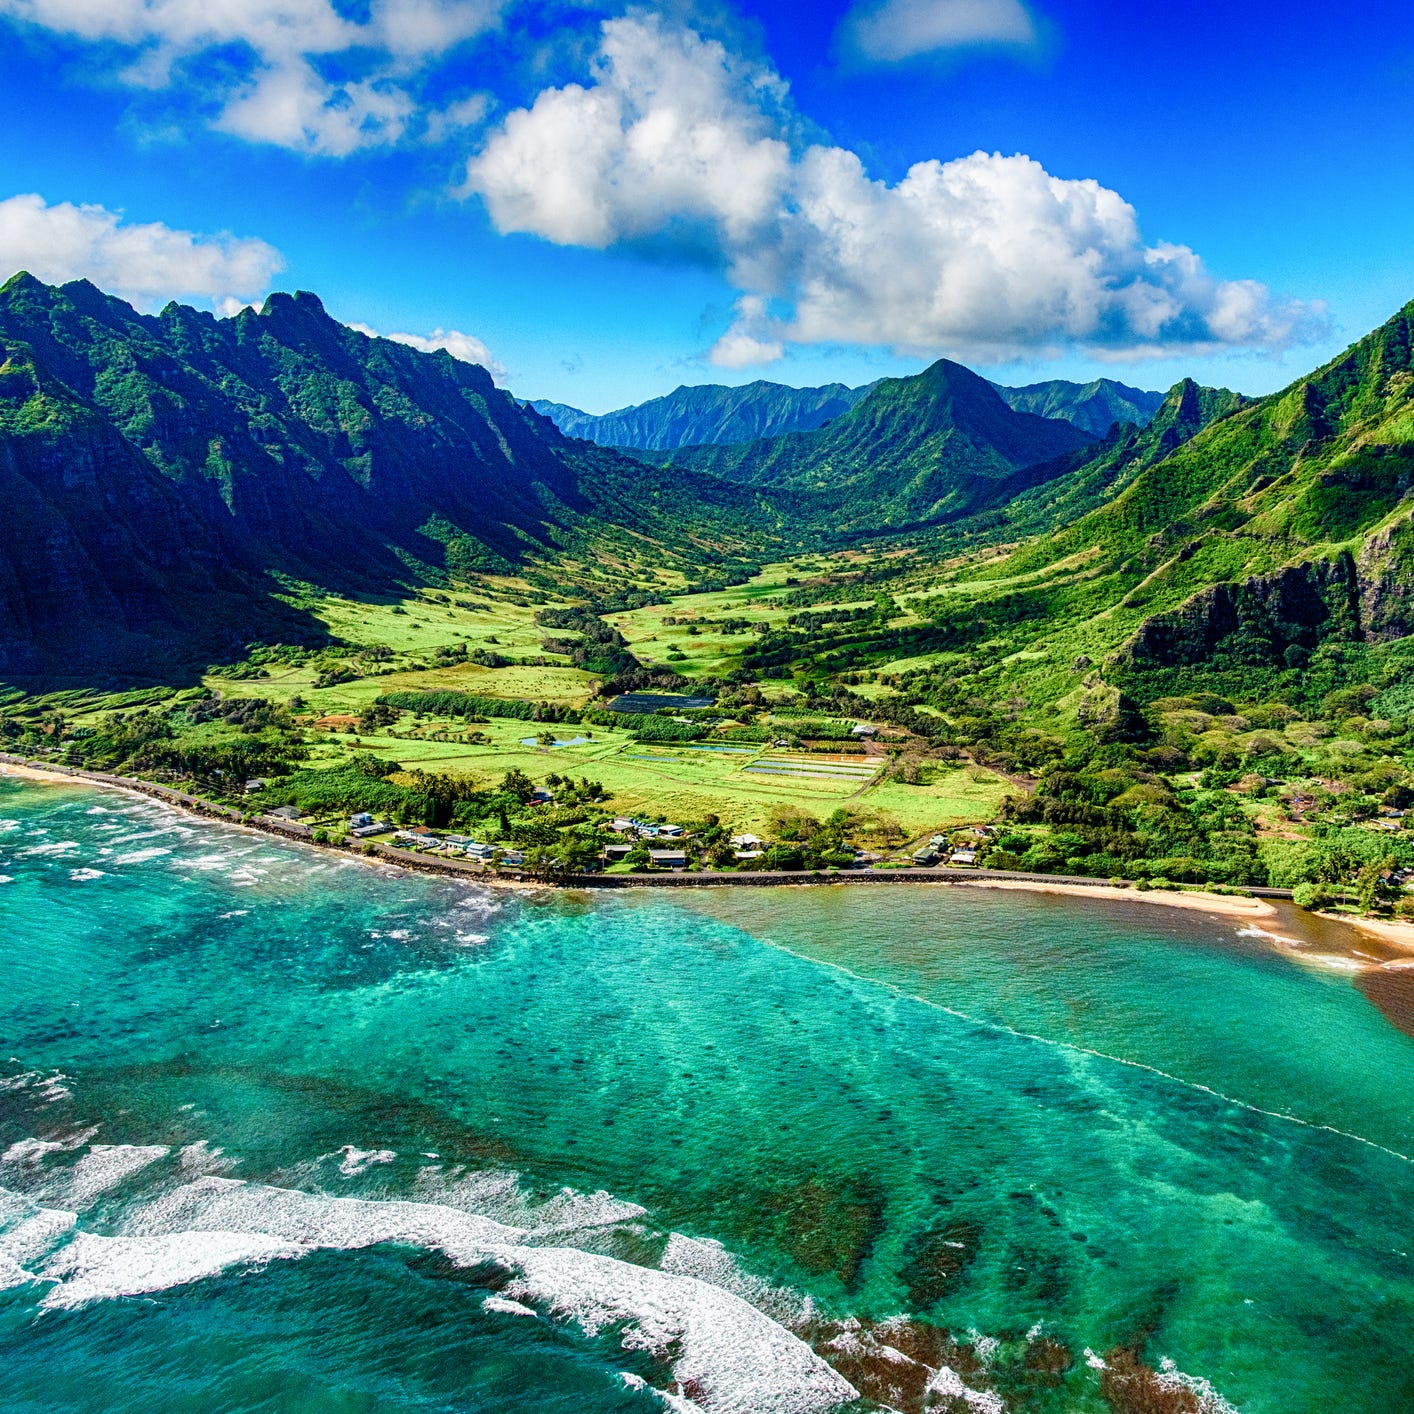 Hawaii: Affordable airfare is making the everyman's bucket-list trip a reality for 2019 (and we're not just talking about flights from the West Coast). Multiple major airlines announced new routes to Hawaii, creating fierce competition for the best fares — a trend that's expected to continue in 2019. And while you can easily spend a pretty penny at luxury resorts, you can just as easily save with vacation rental properties steps from the beach.